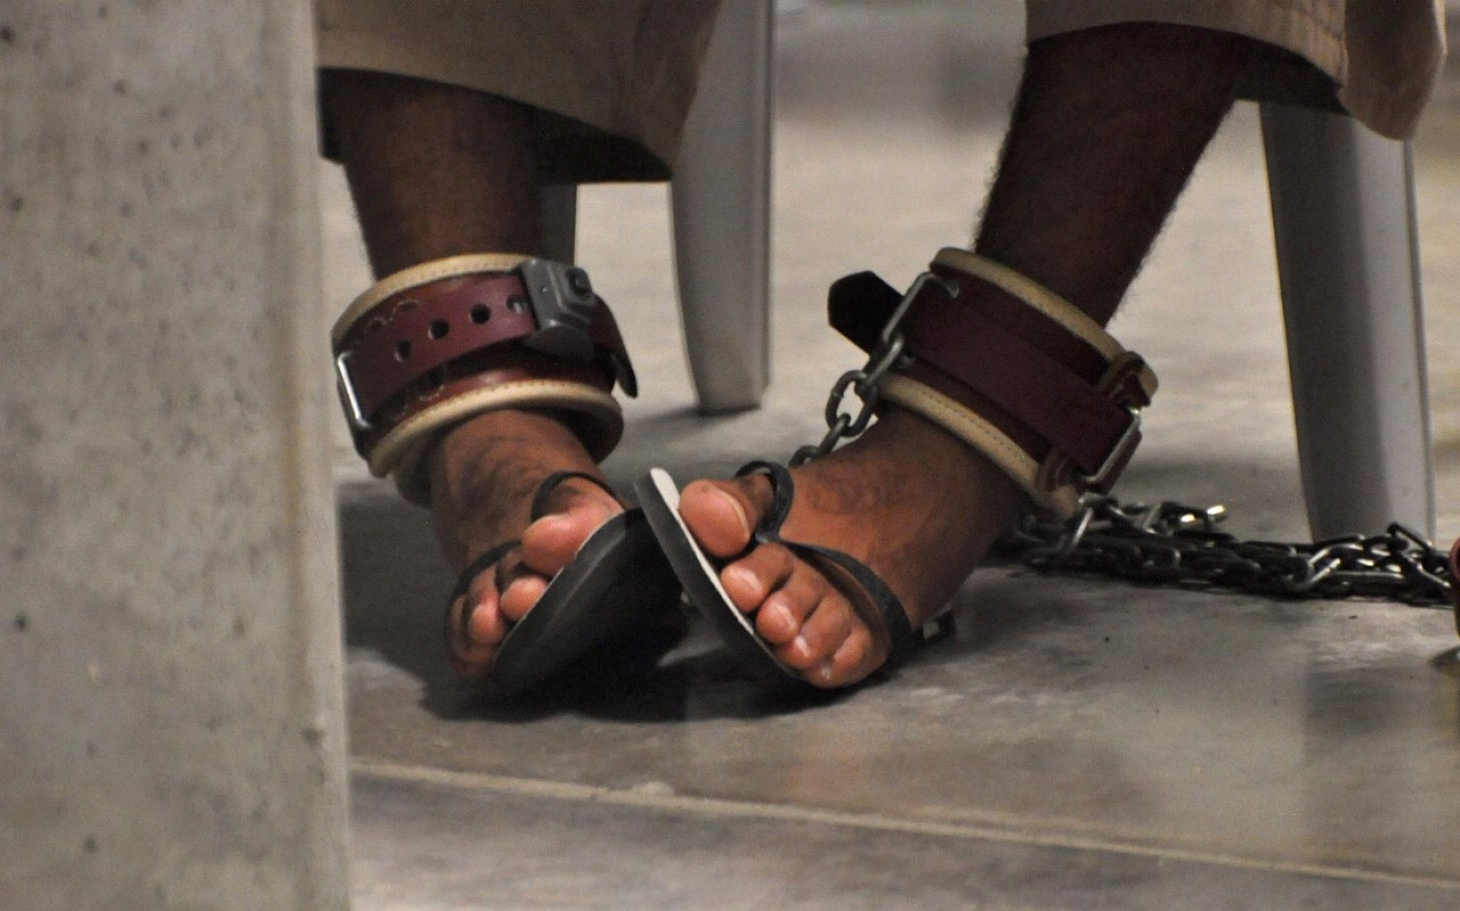 guantanamo diary a tale of american torture al jazeera america thumbnail image for are some prisoners in guantatildeiexclnamo forever